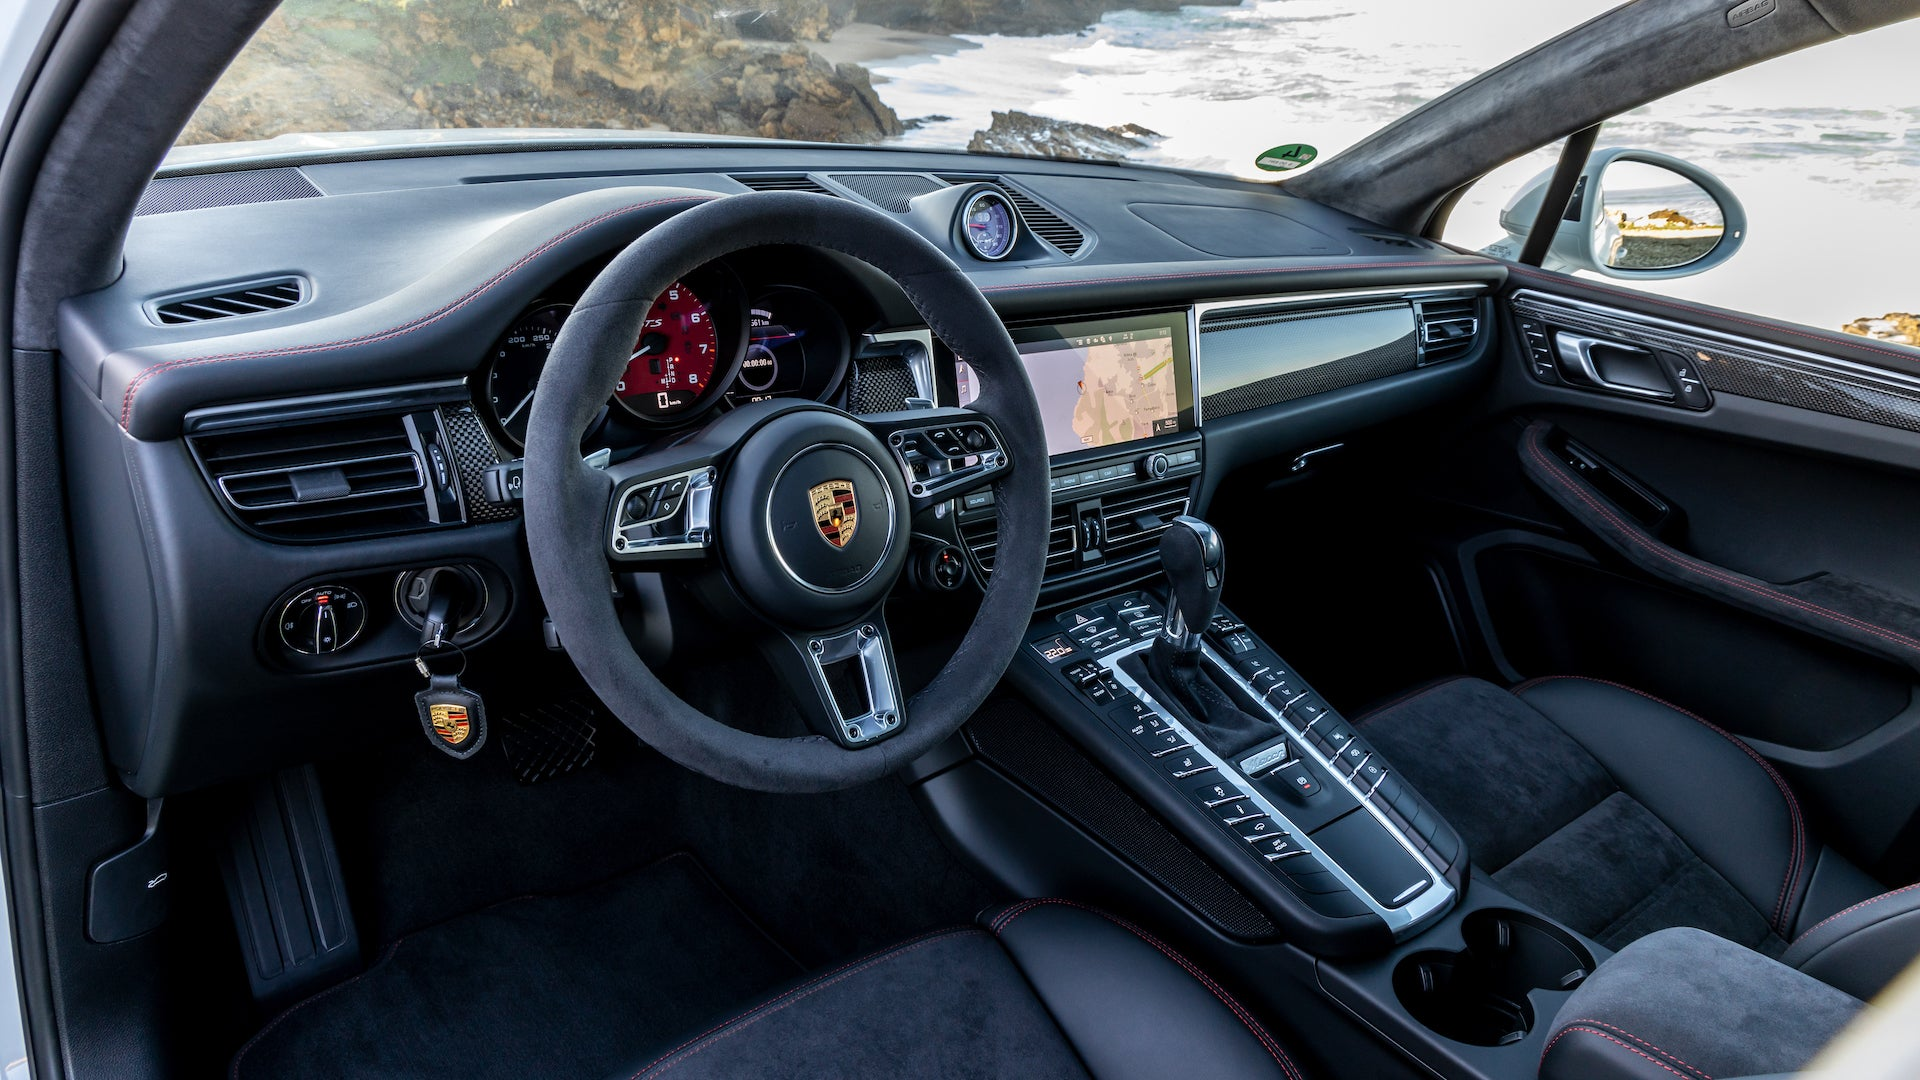 The 2020 Porsche Macan Gts First Drive Review The Tallest Hot Hatch Is Back The Drive